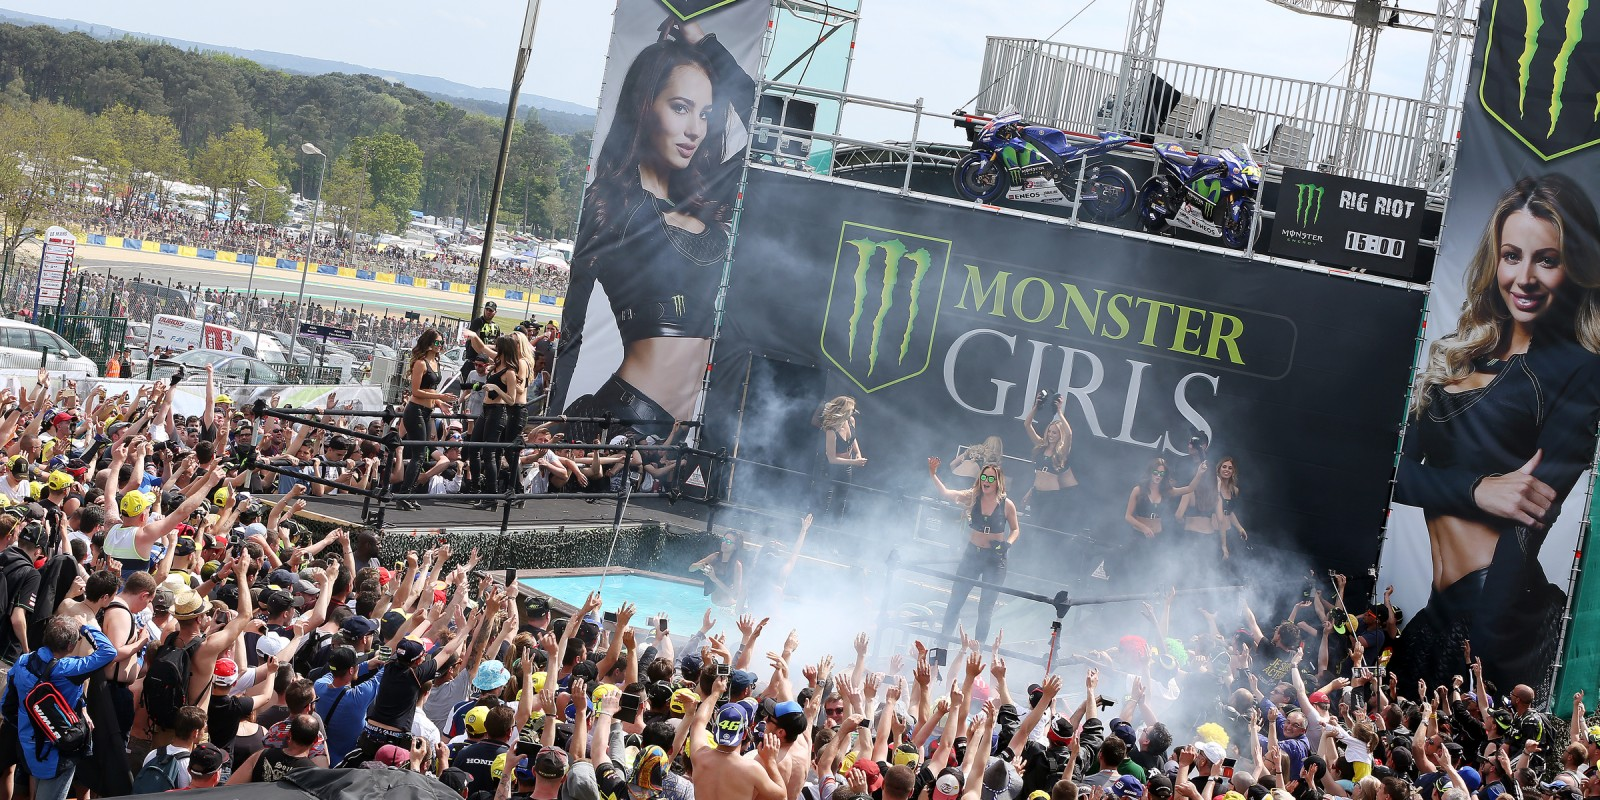 Monster Girls in action on the all new Monster Girl stage at our rig for Le Mans Moto GP 2016.